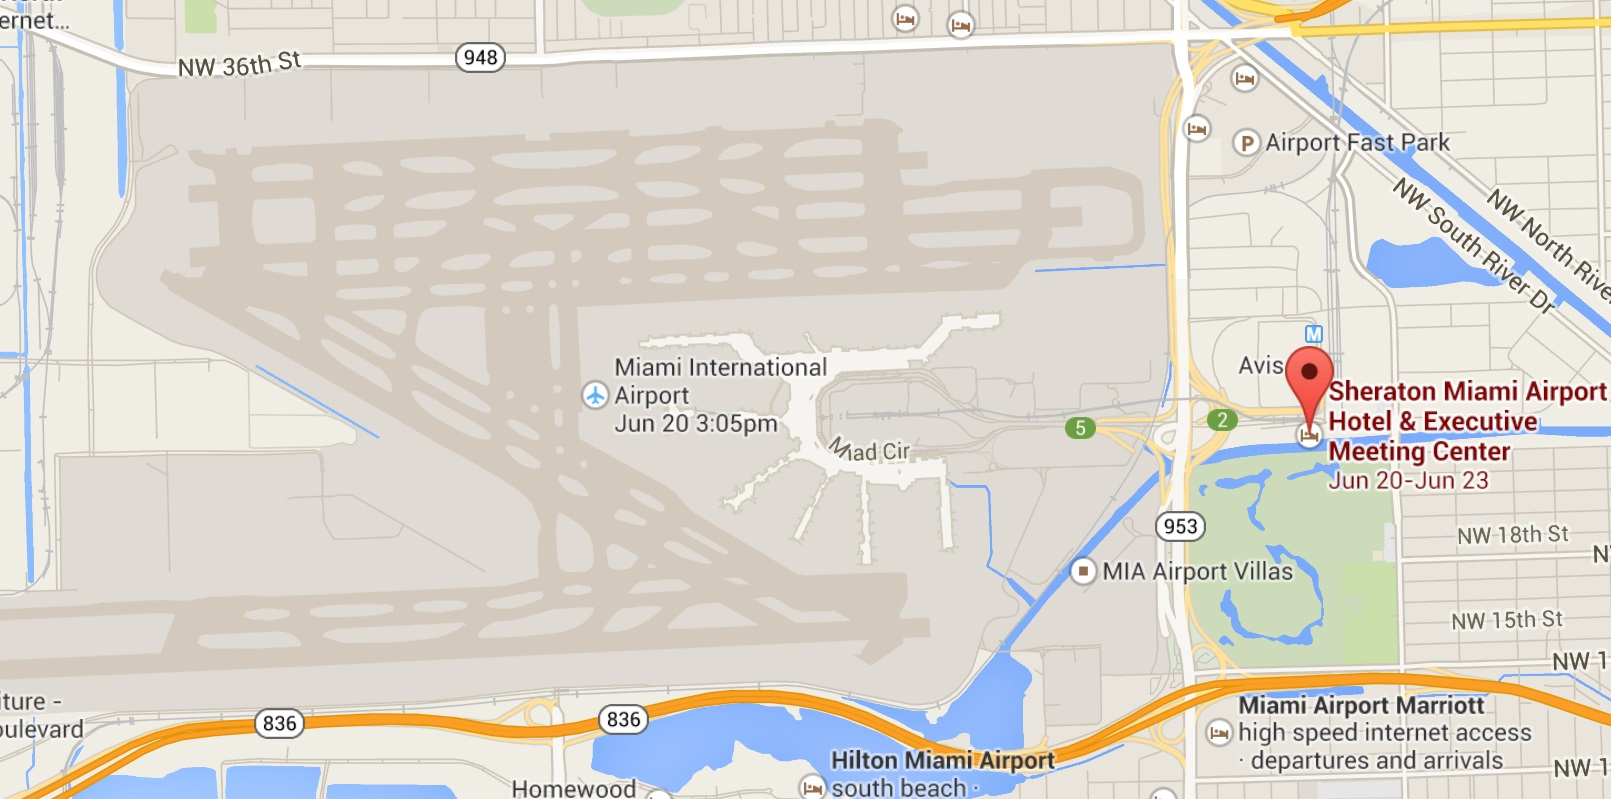 airport parking at miami international airpot